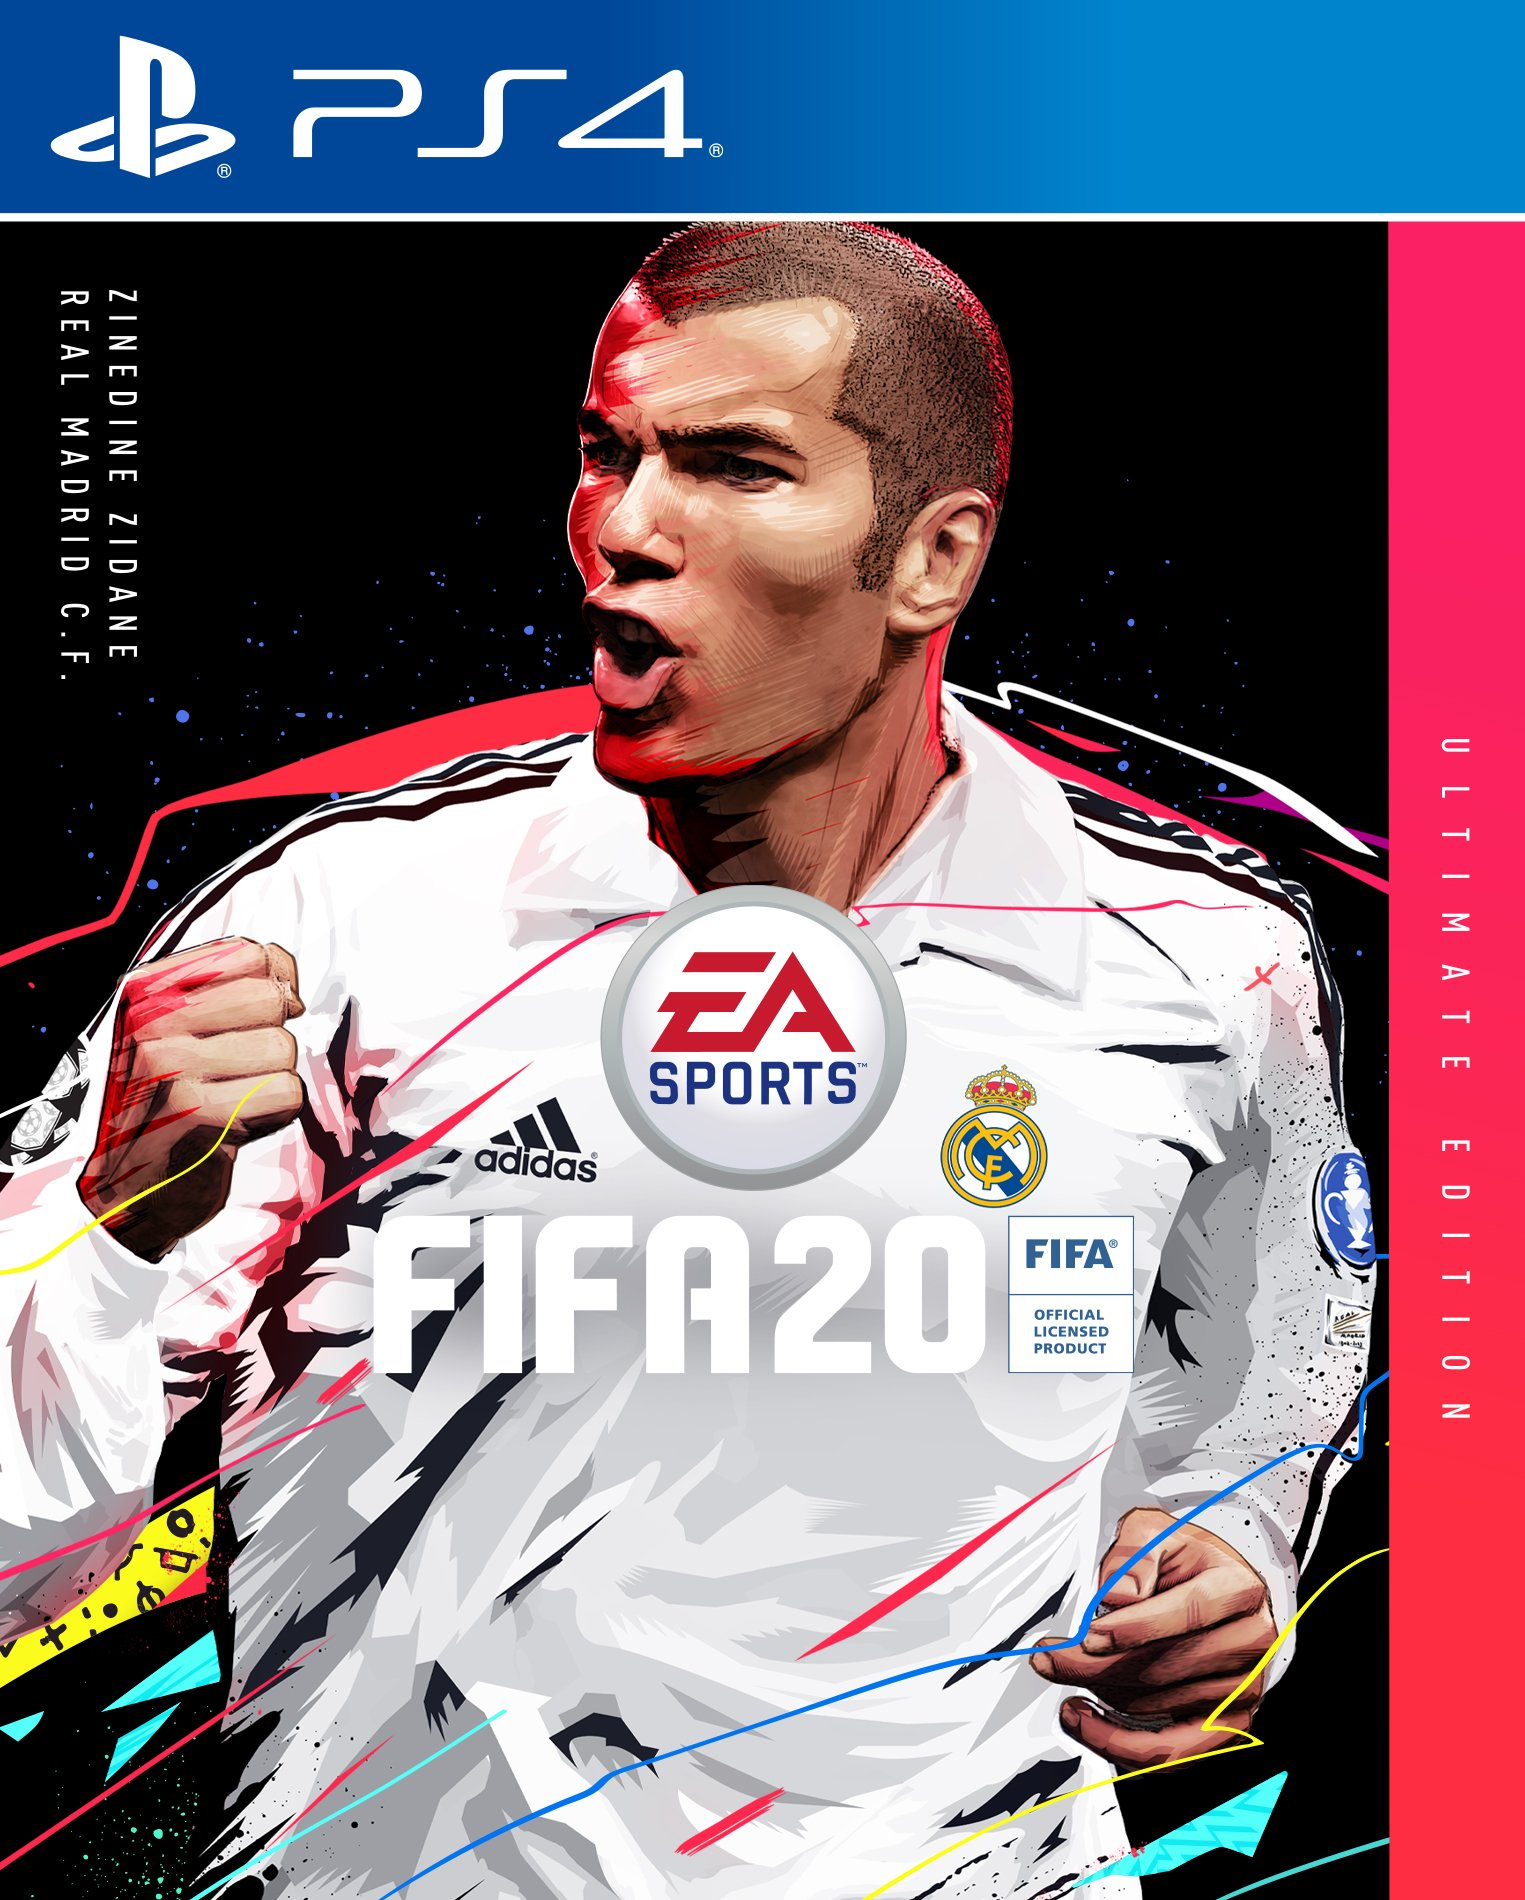 fifa 20 1 - 7 Key Things To Know About FIFA 2020 Coming This September